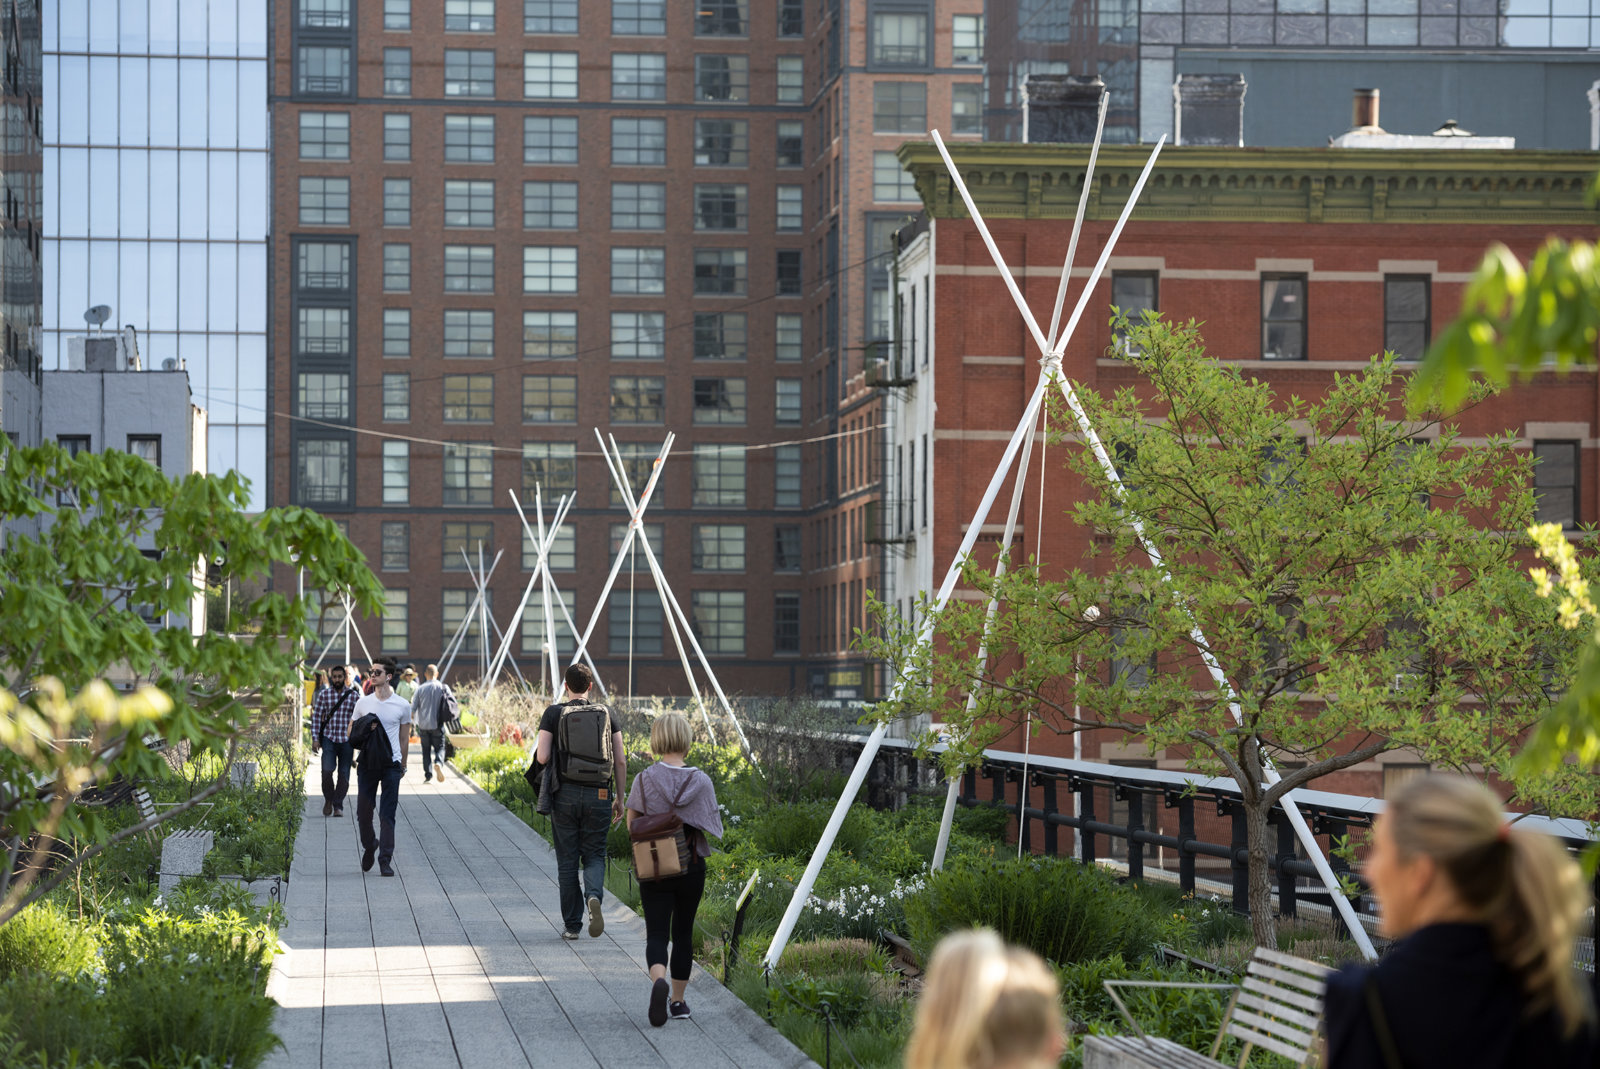 Duane Linklater, pêyakotênaw, 2018, teepee poles, rope, stones, flagging tape, paint, each approximately 181 x 143 x 143 in. (456 x 363 x 363 cm). Installation view, Agora, High Line Art, New York, 2018